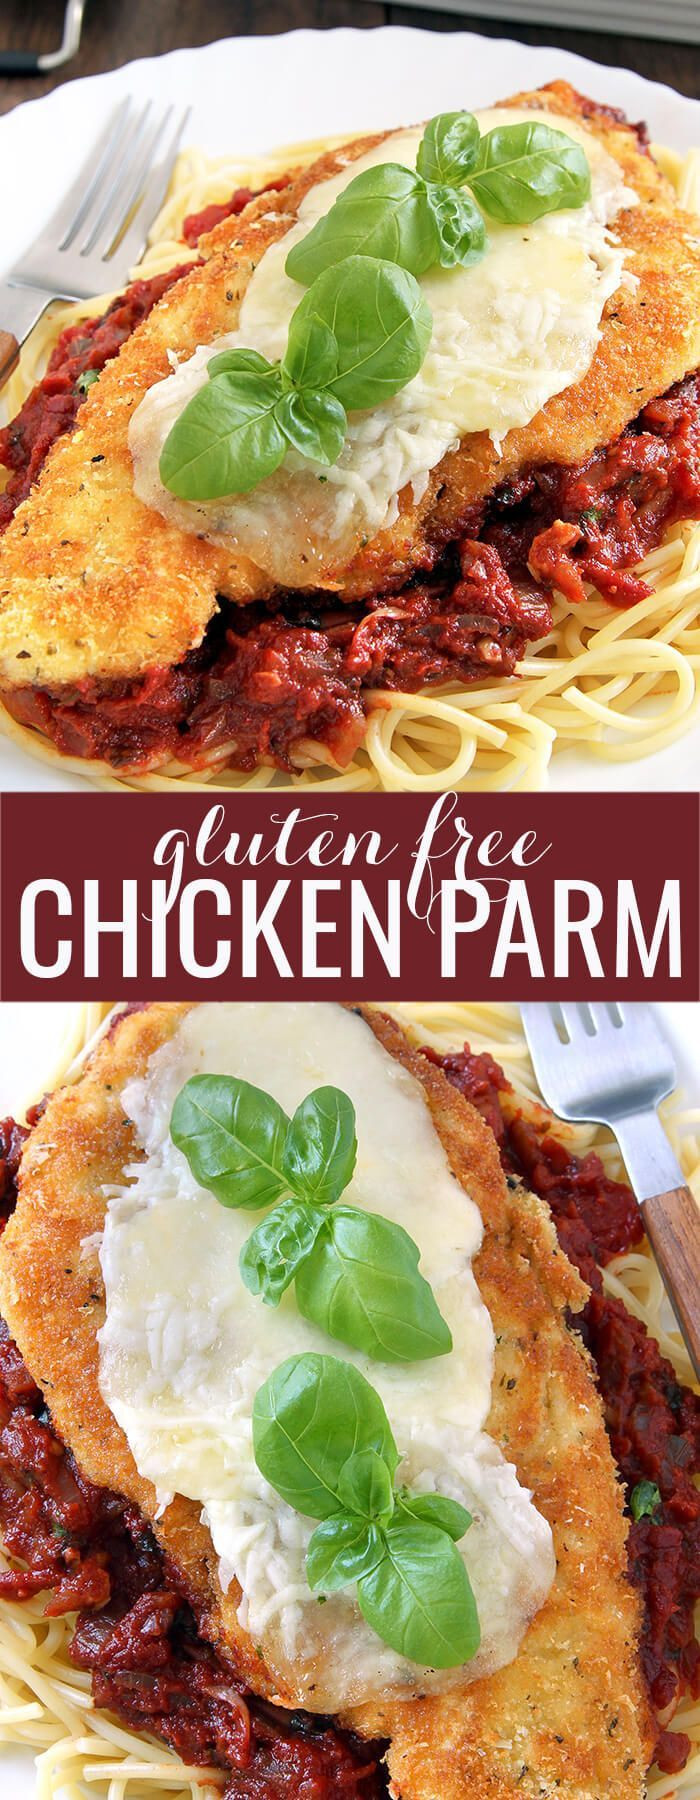 Dairy Free Chicken Breast Recipes  1000 images about Gluten Free Recipes on Pinterest